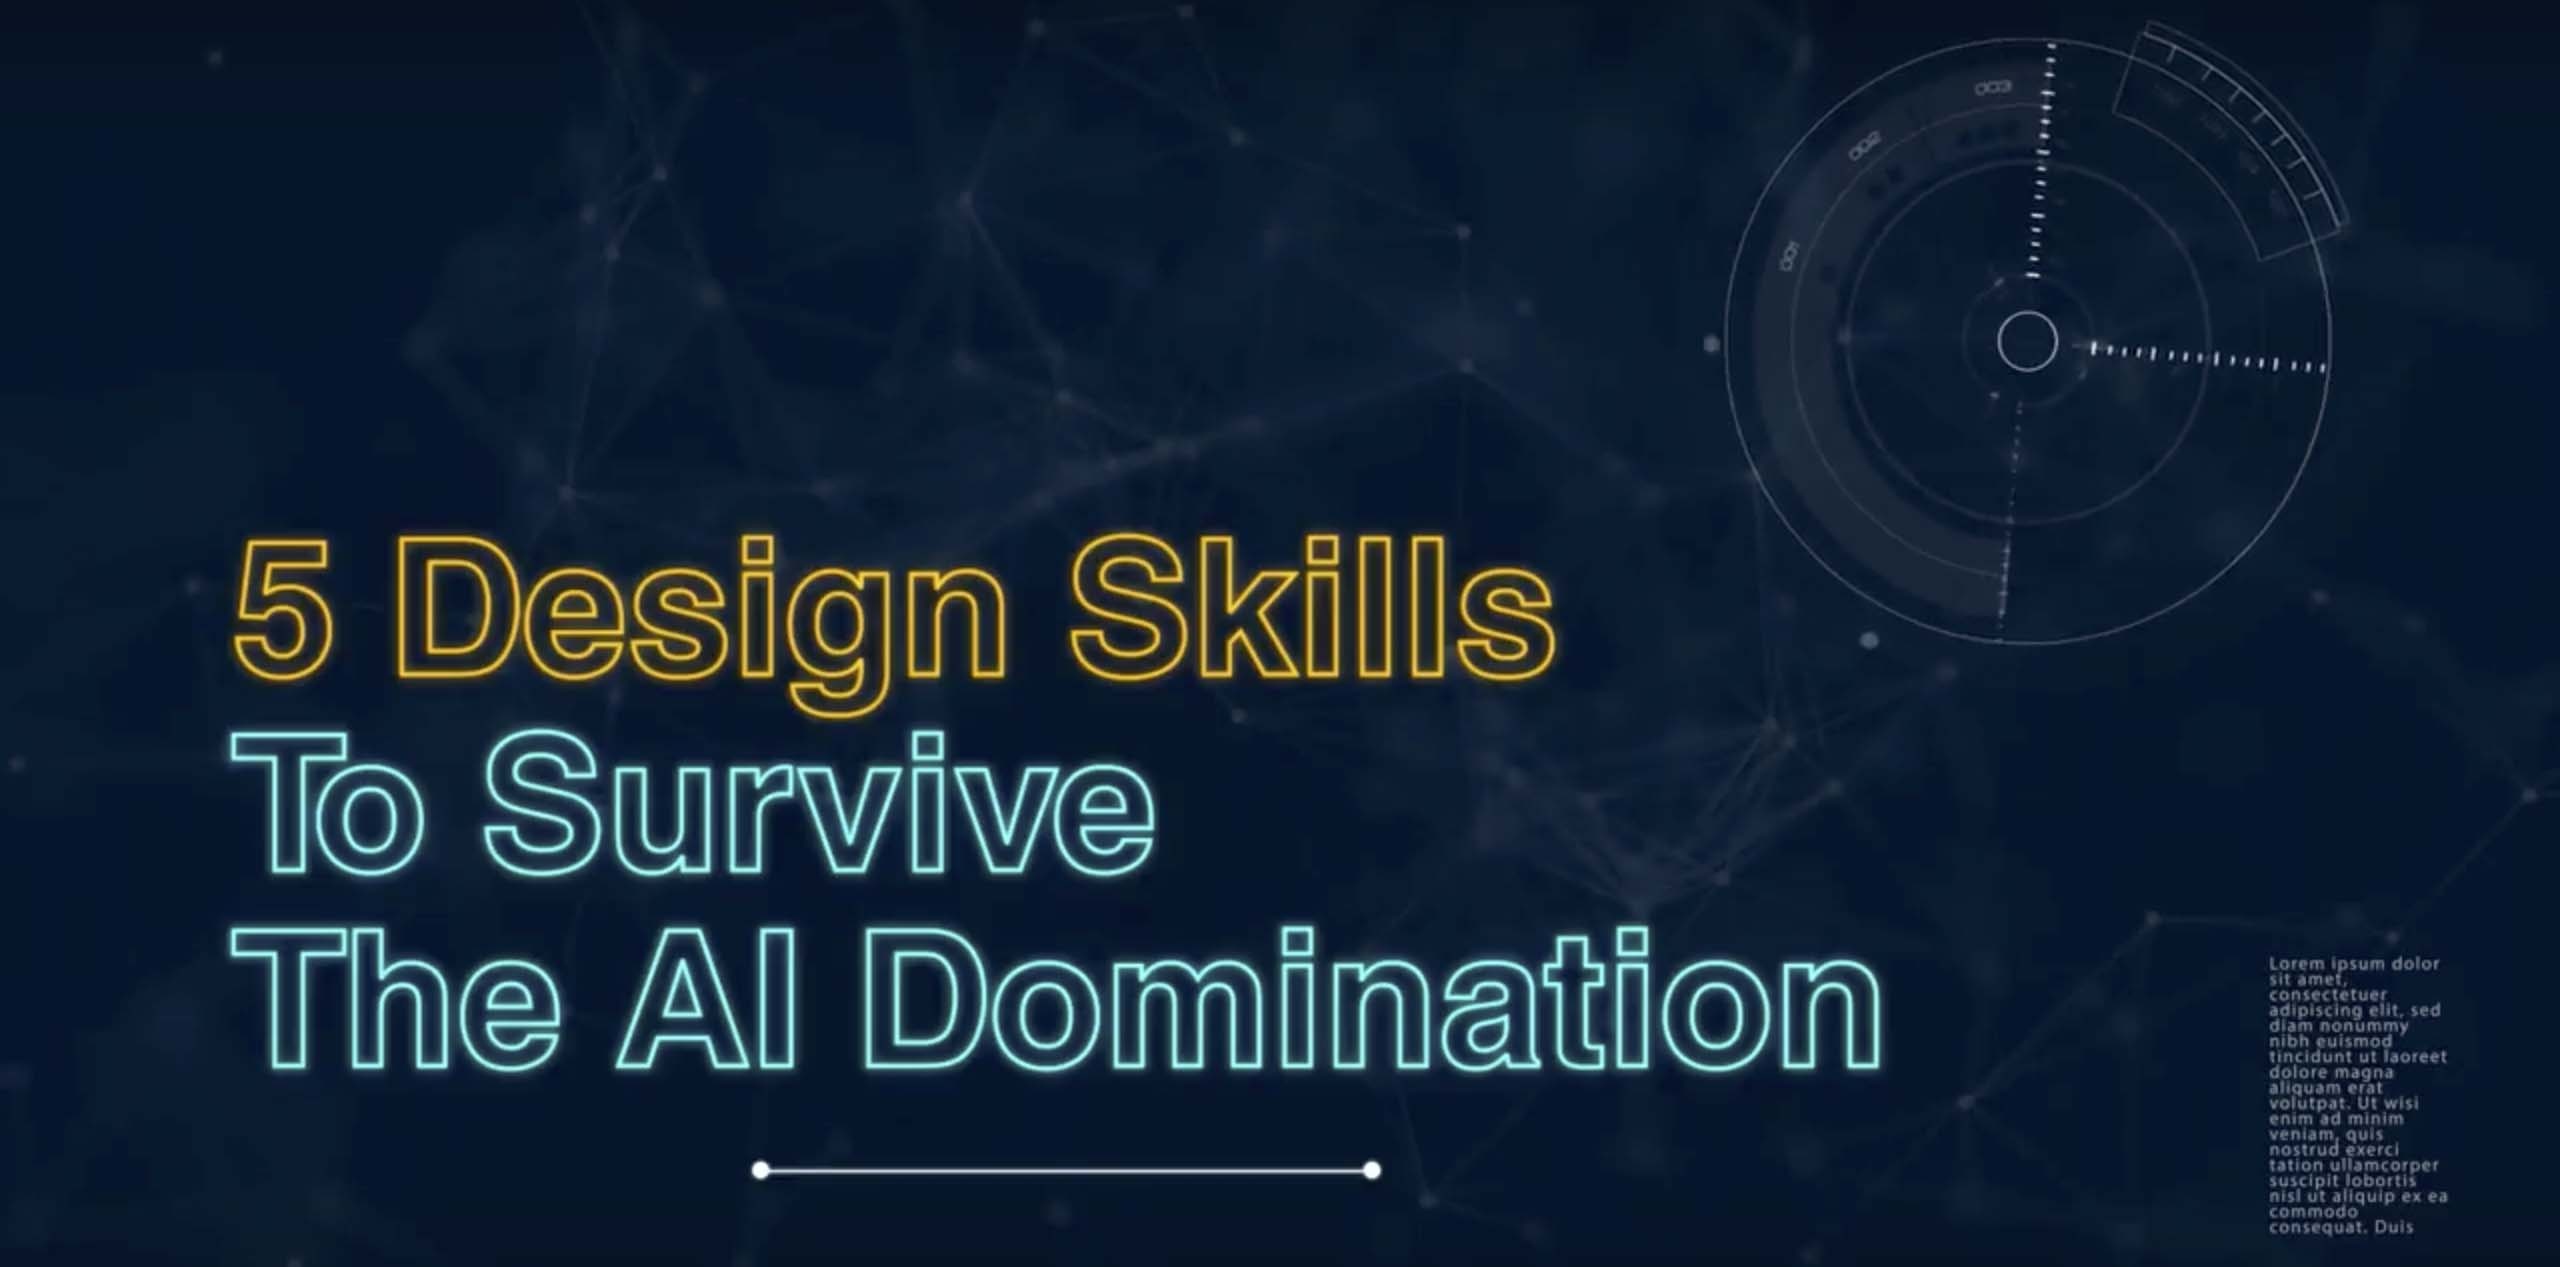 5 Design Skills To Survive The AI Domination